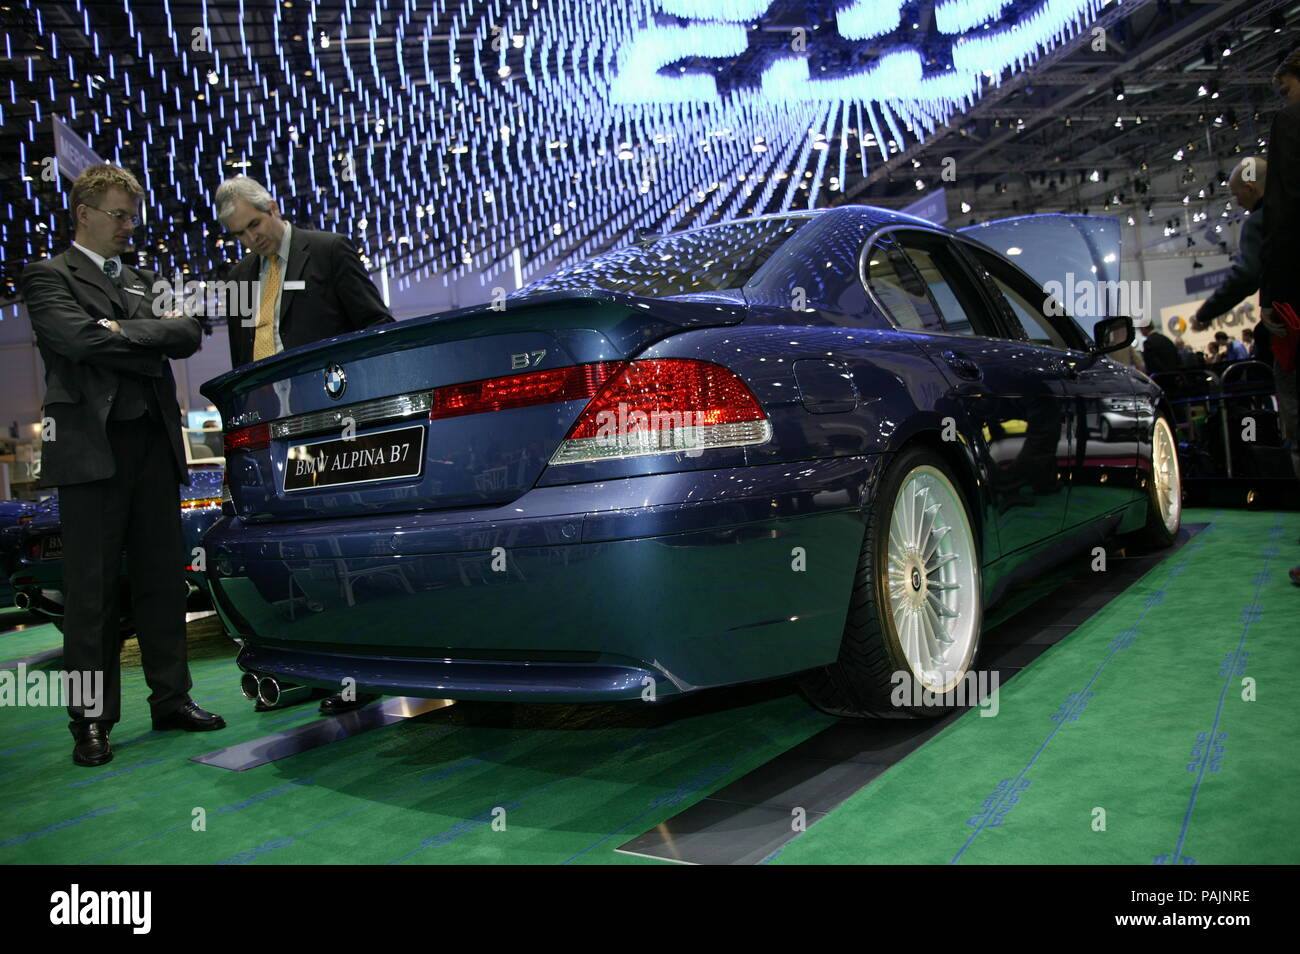 BMW Alpina B7 Sports car modified as shown at frankfurt motorshow 2003 - Stock Image